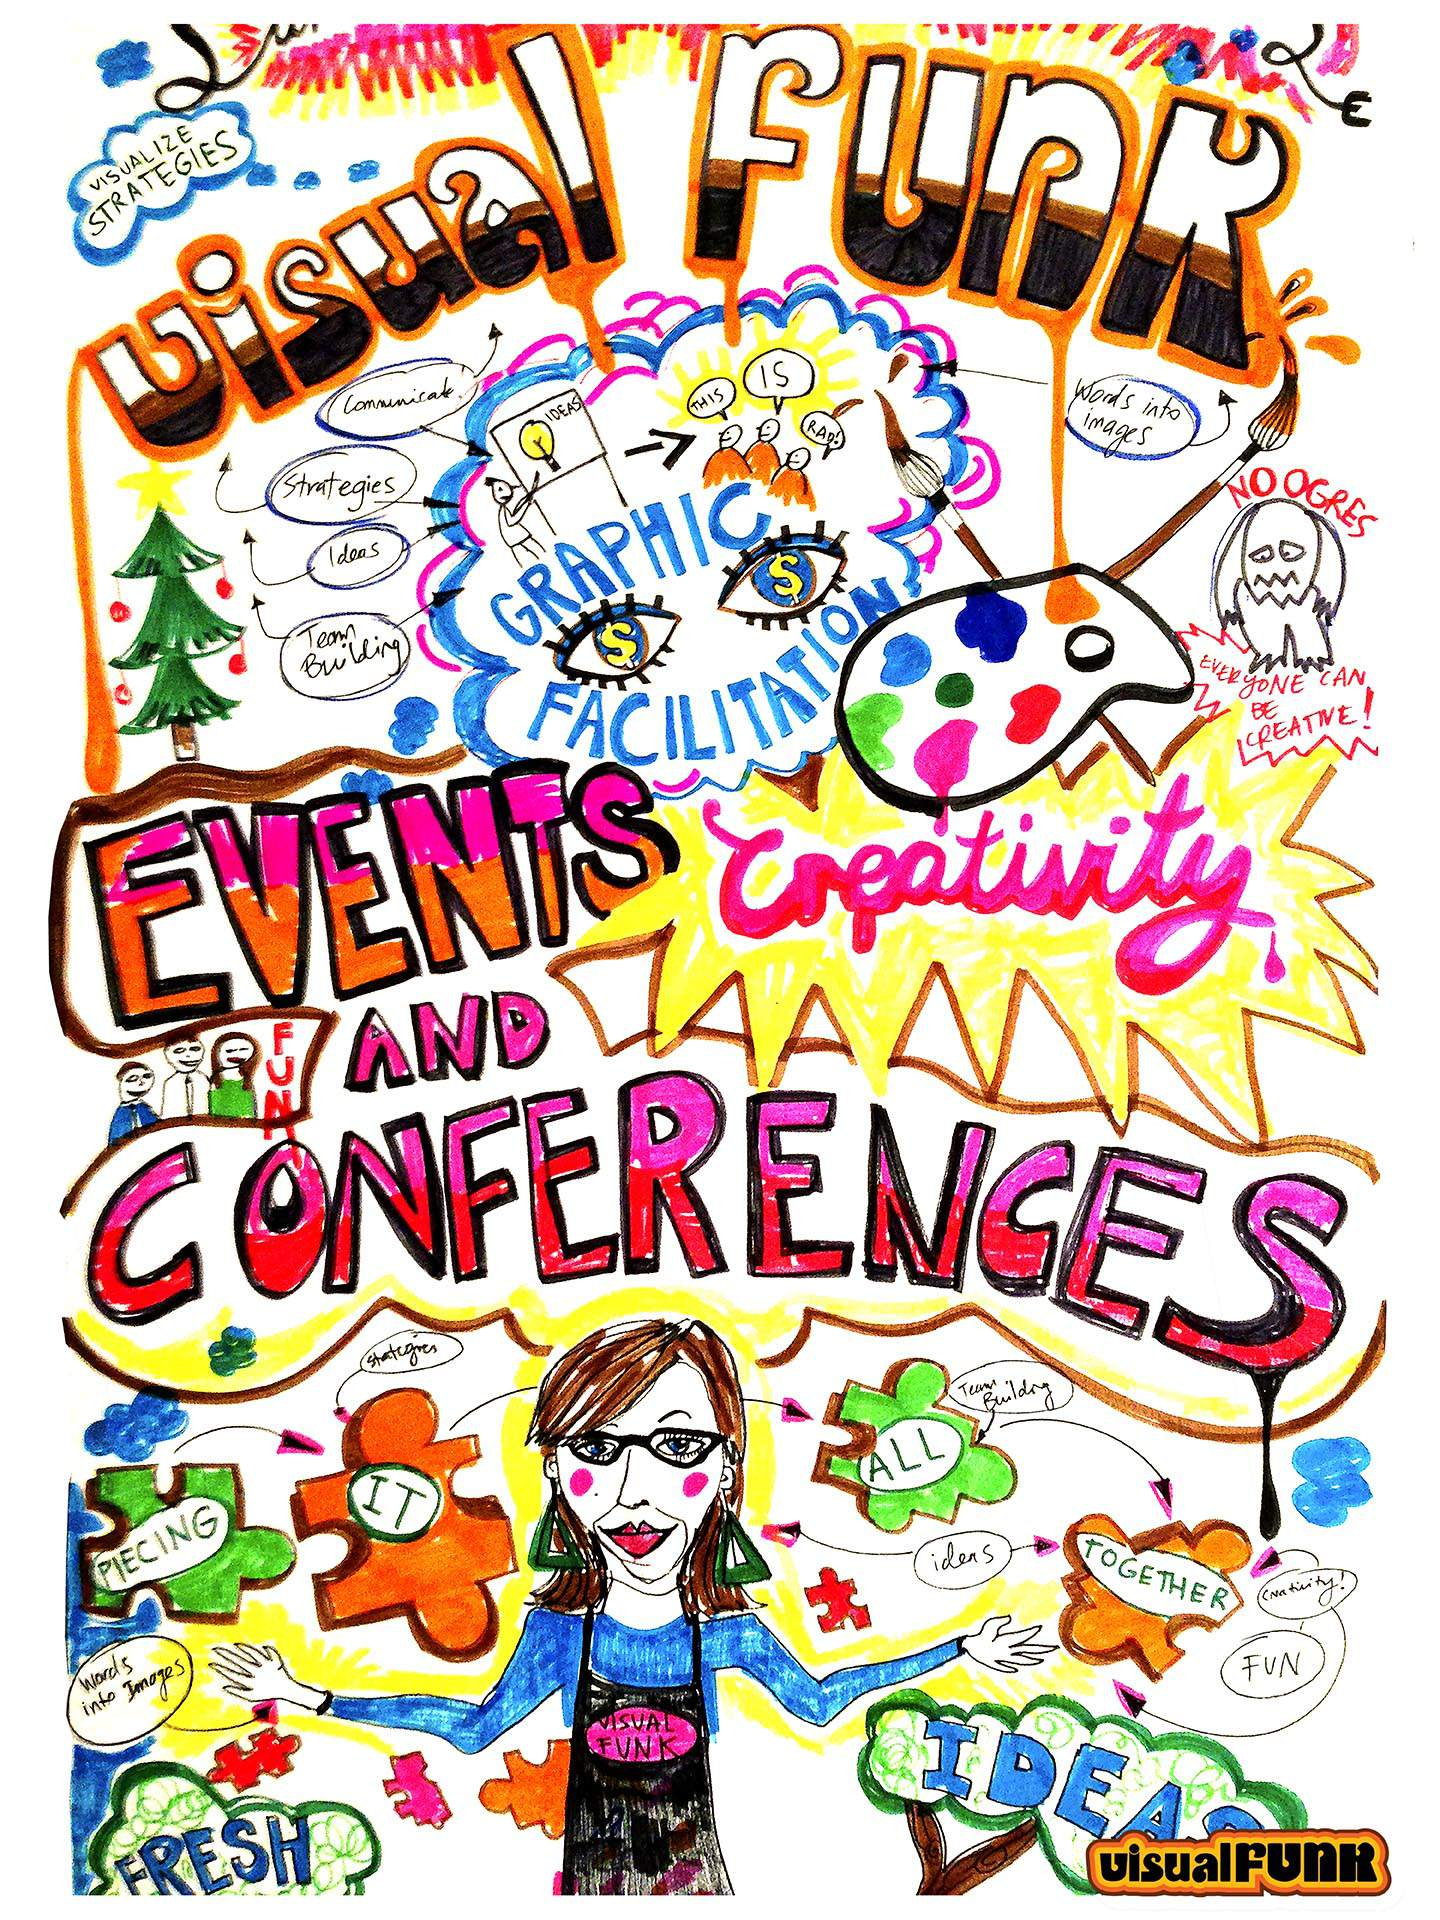 Events & Conference VF graphic facilitation